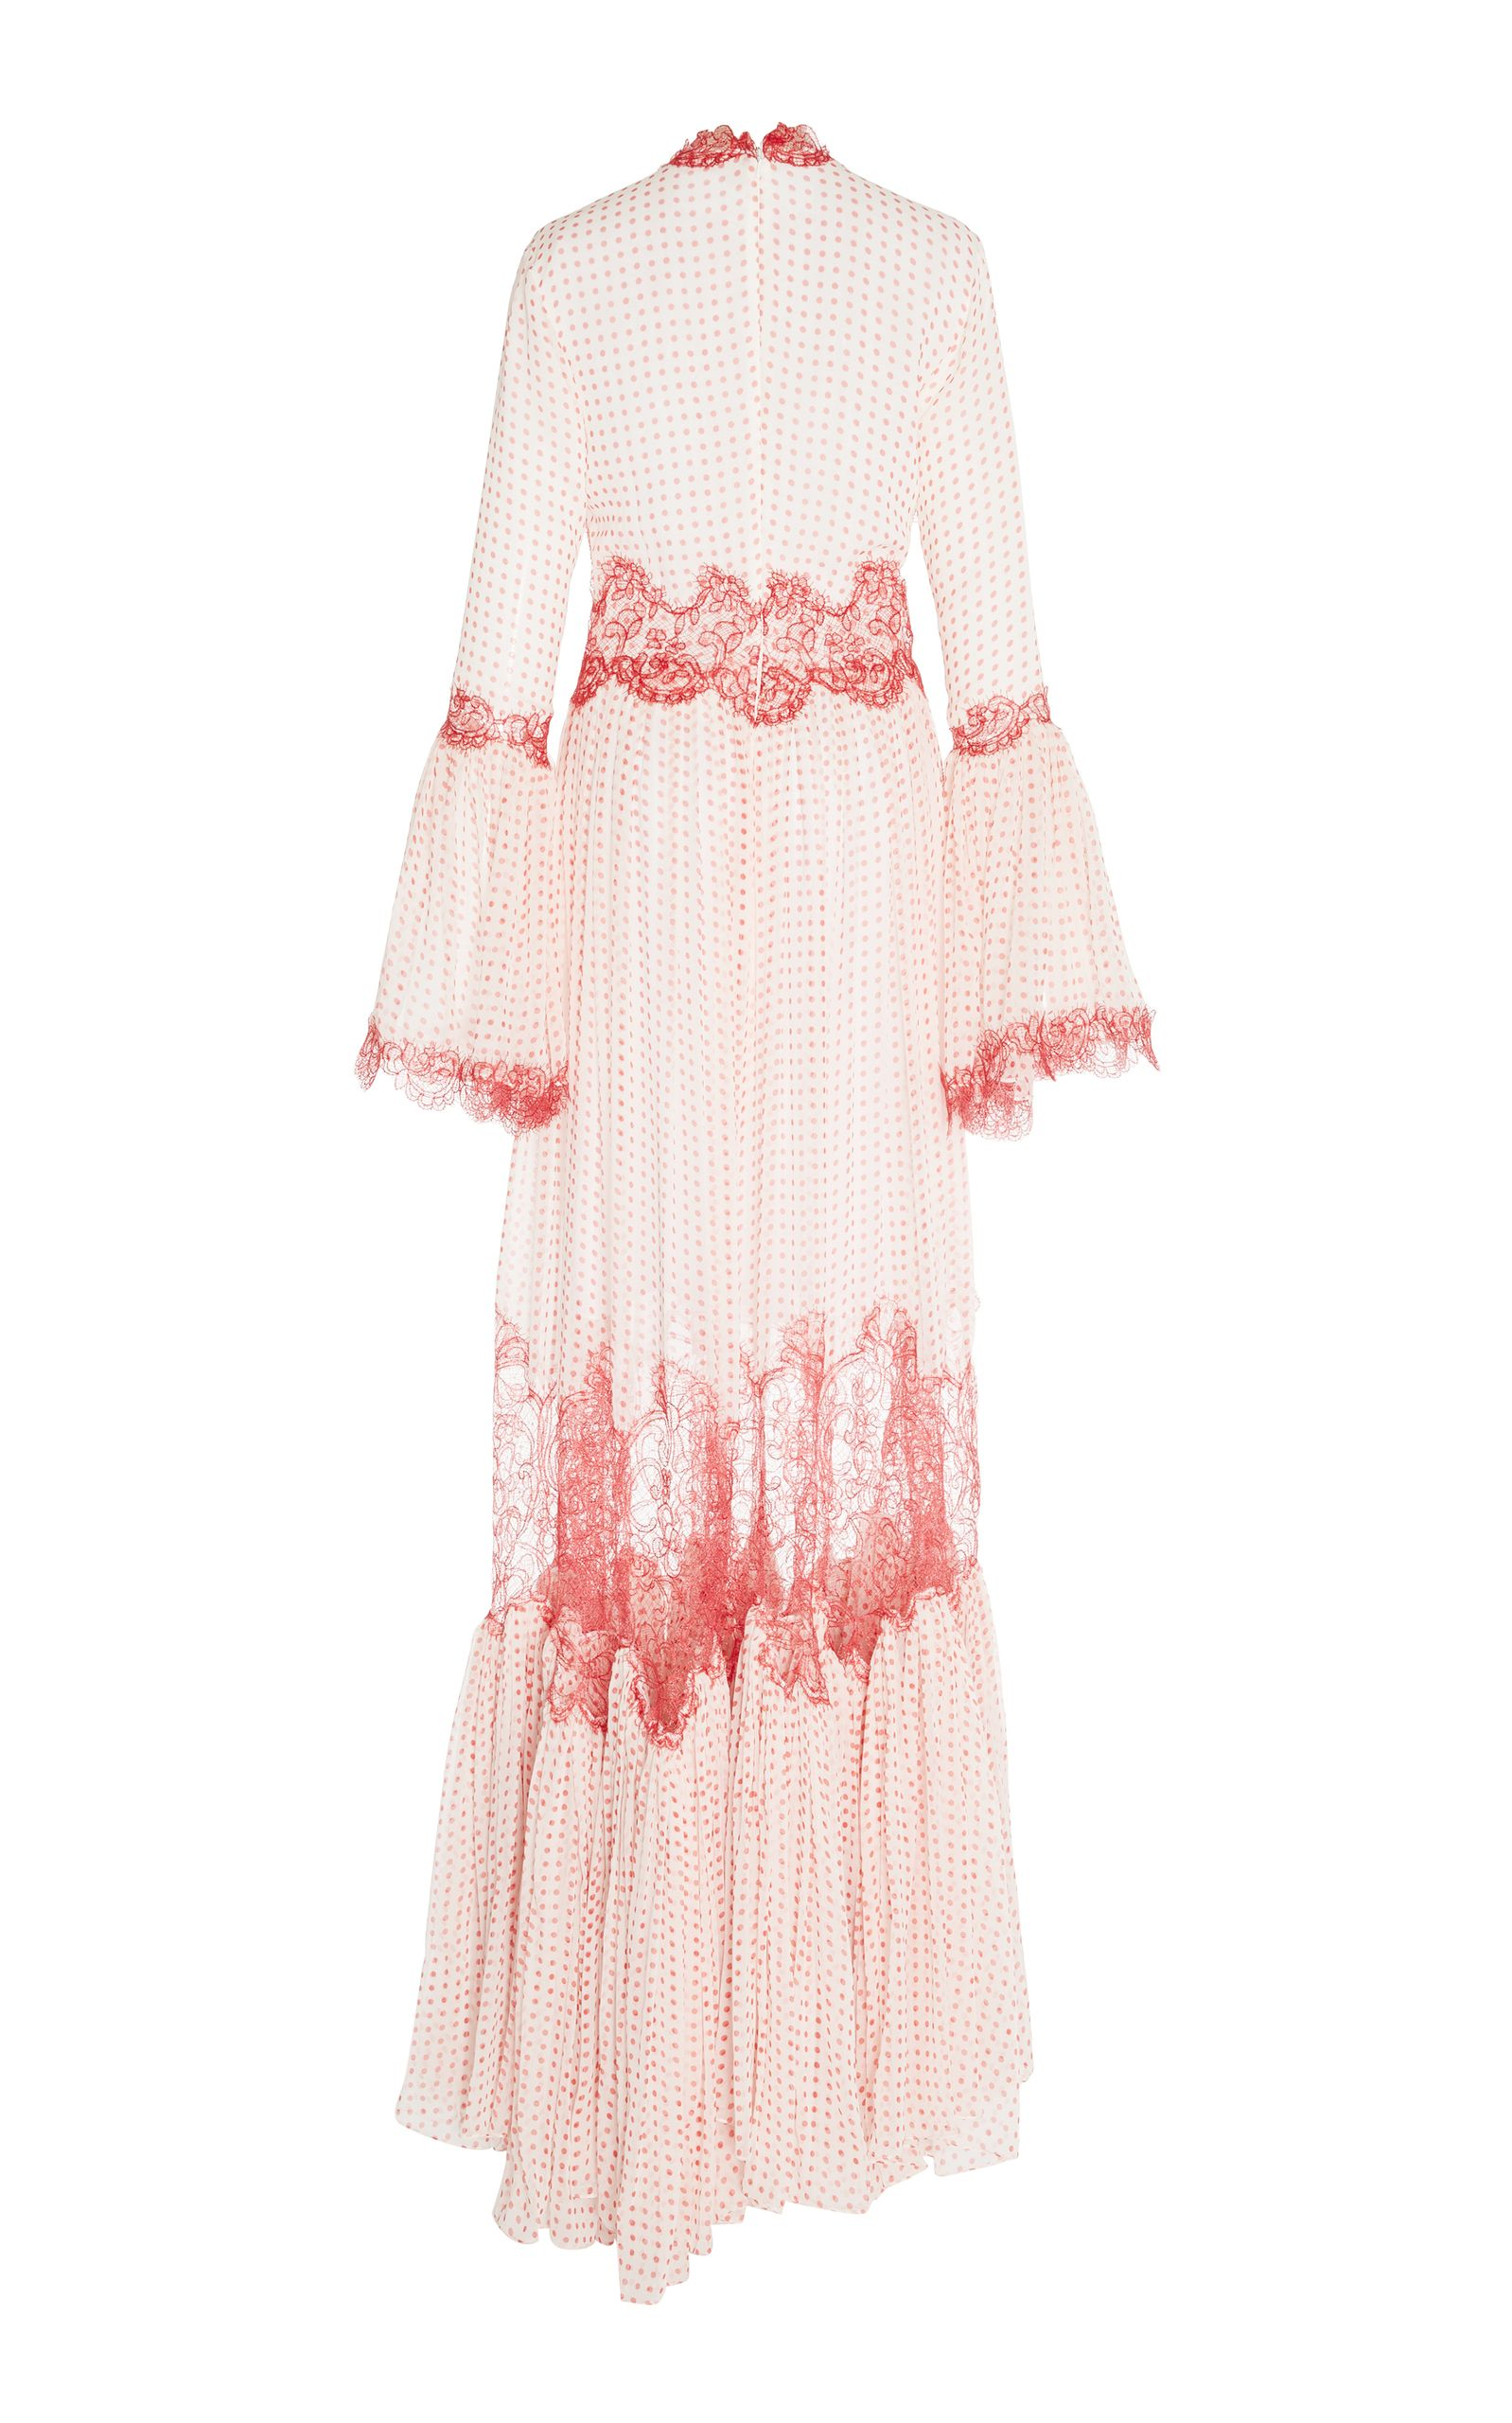 Bell Sleeve Long Dress Costarellos Order 2018 New Cheap Online Free Shipping With Paypal h5LMdMi1